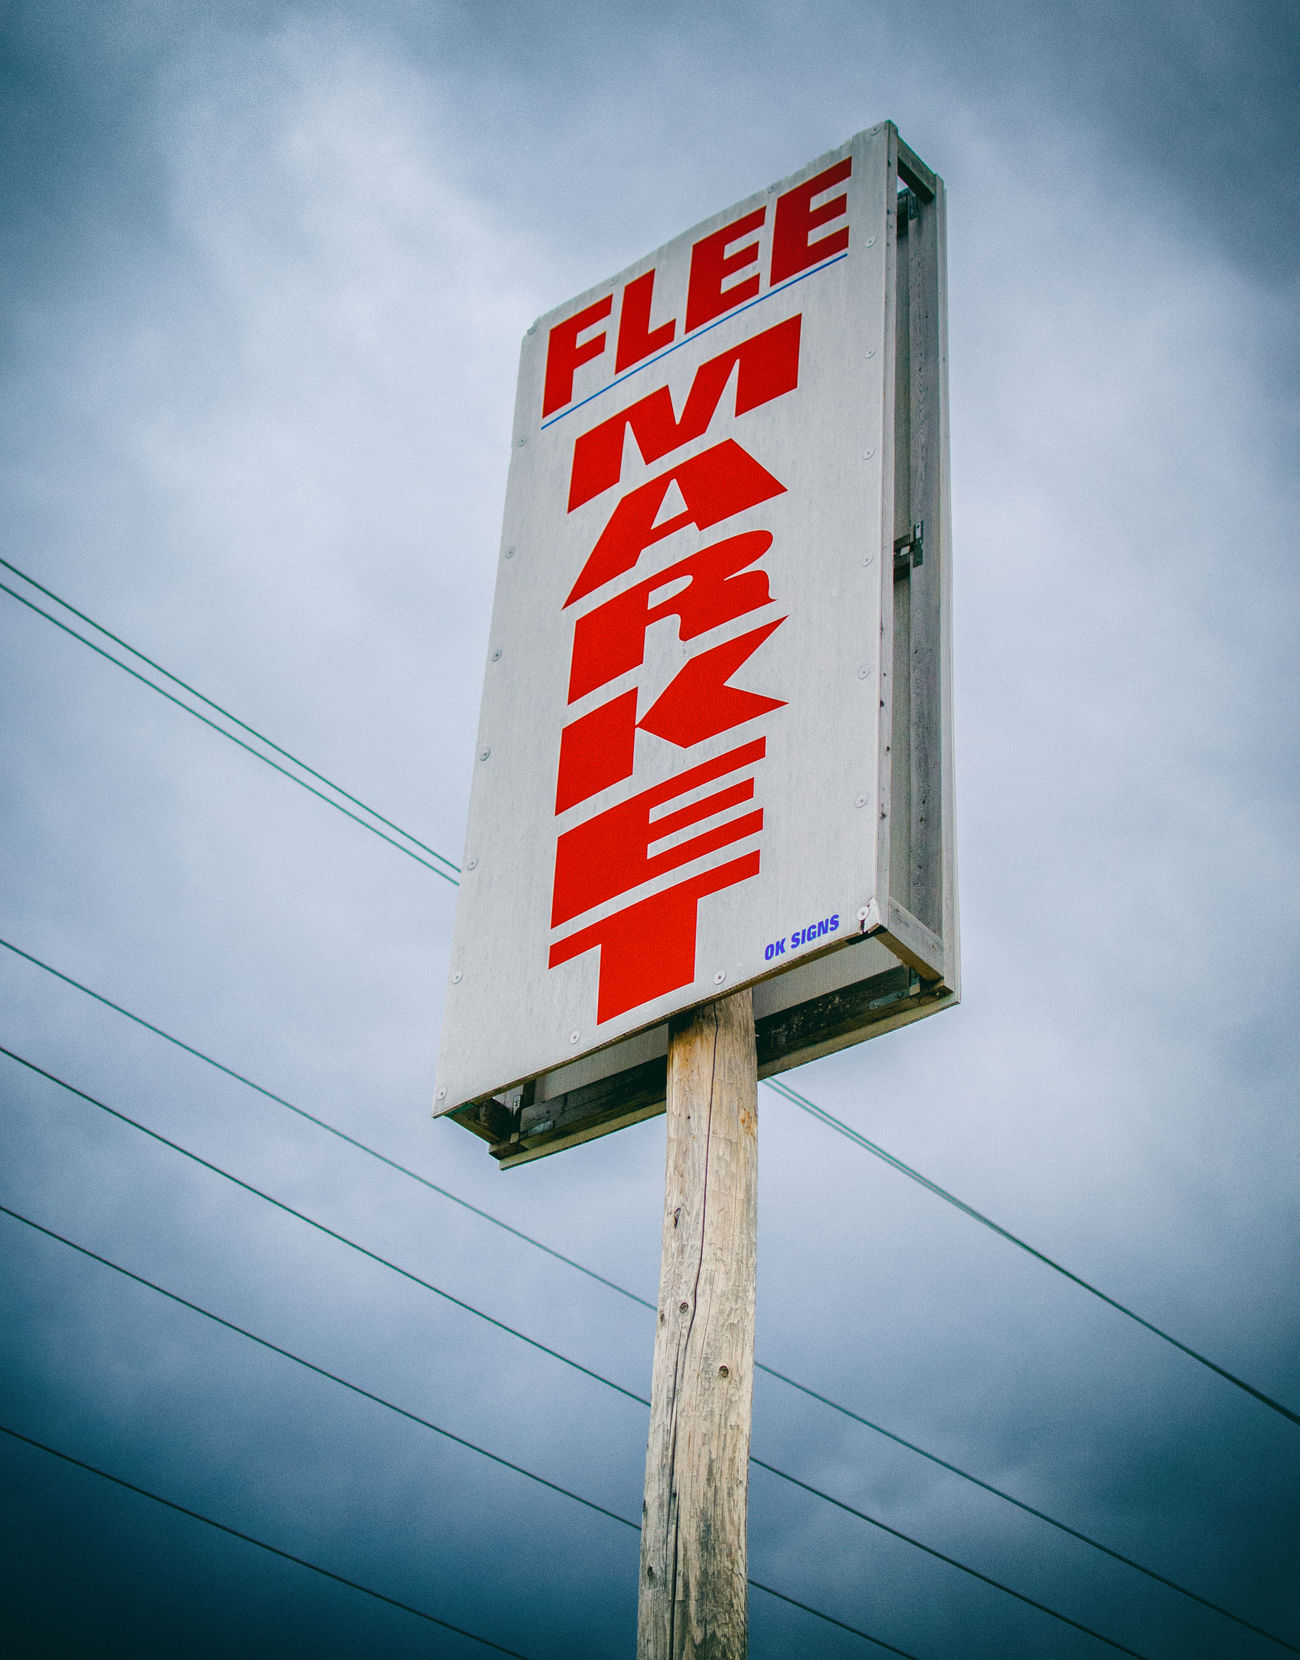 Antique Cloud - Sky Day Fleemarket Low Angle View Outdoors Pole Red Shopping Sign